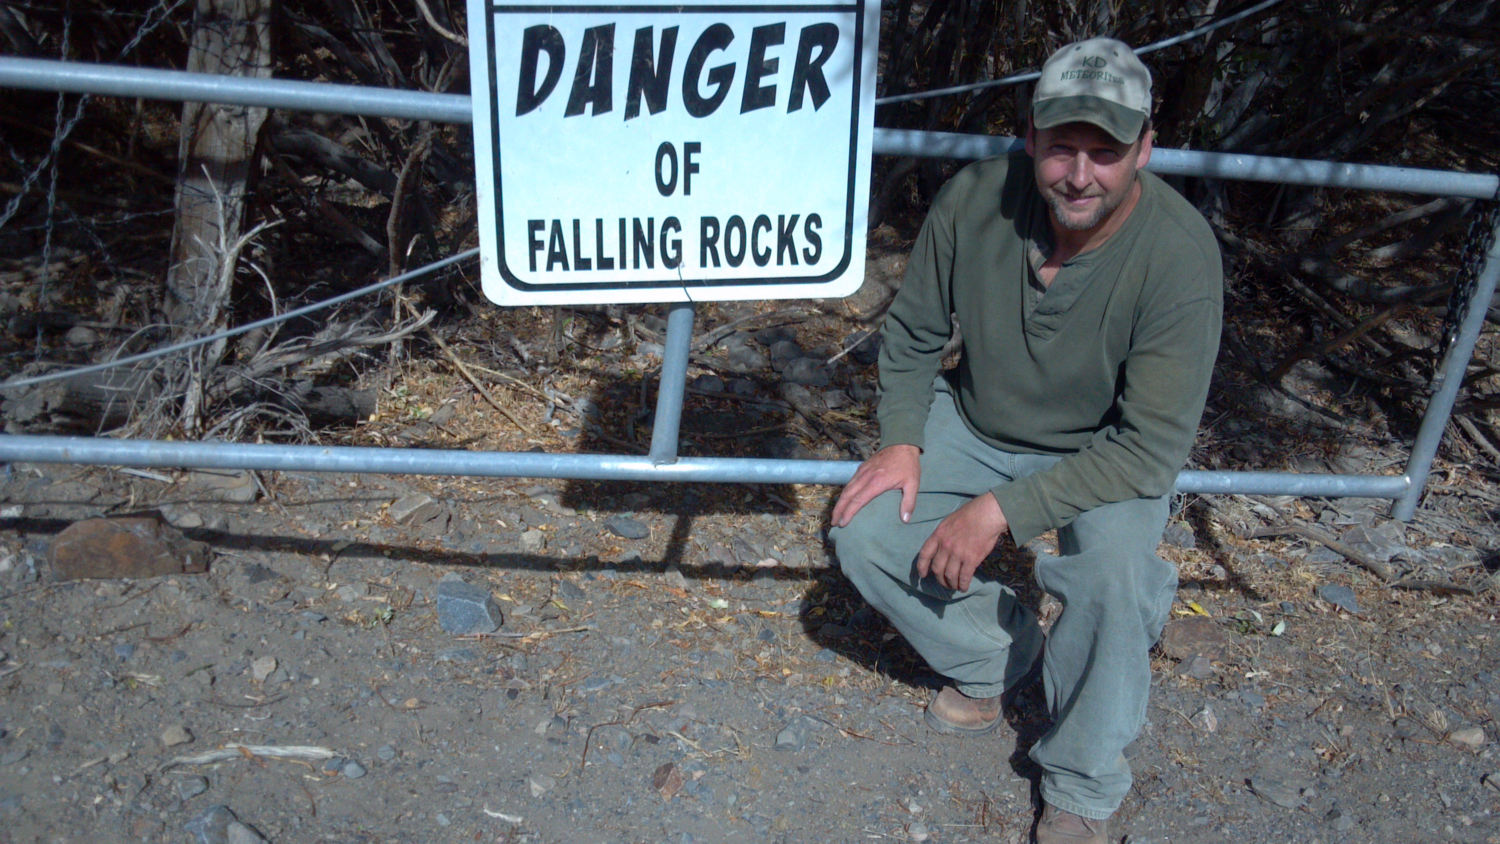 Danger of Falling Rocks? Meteorites or Earth rocks?